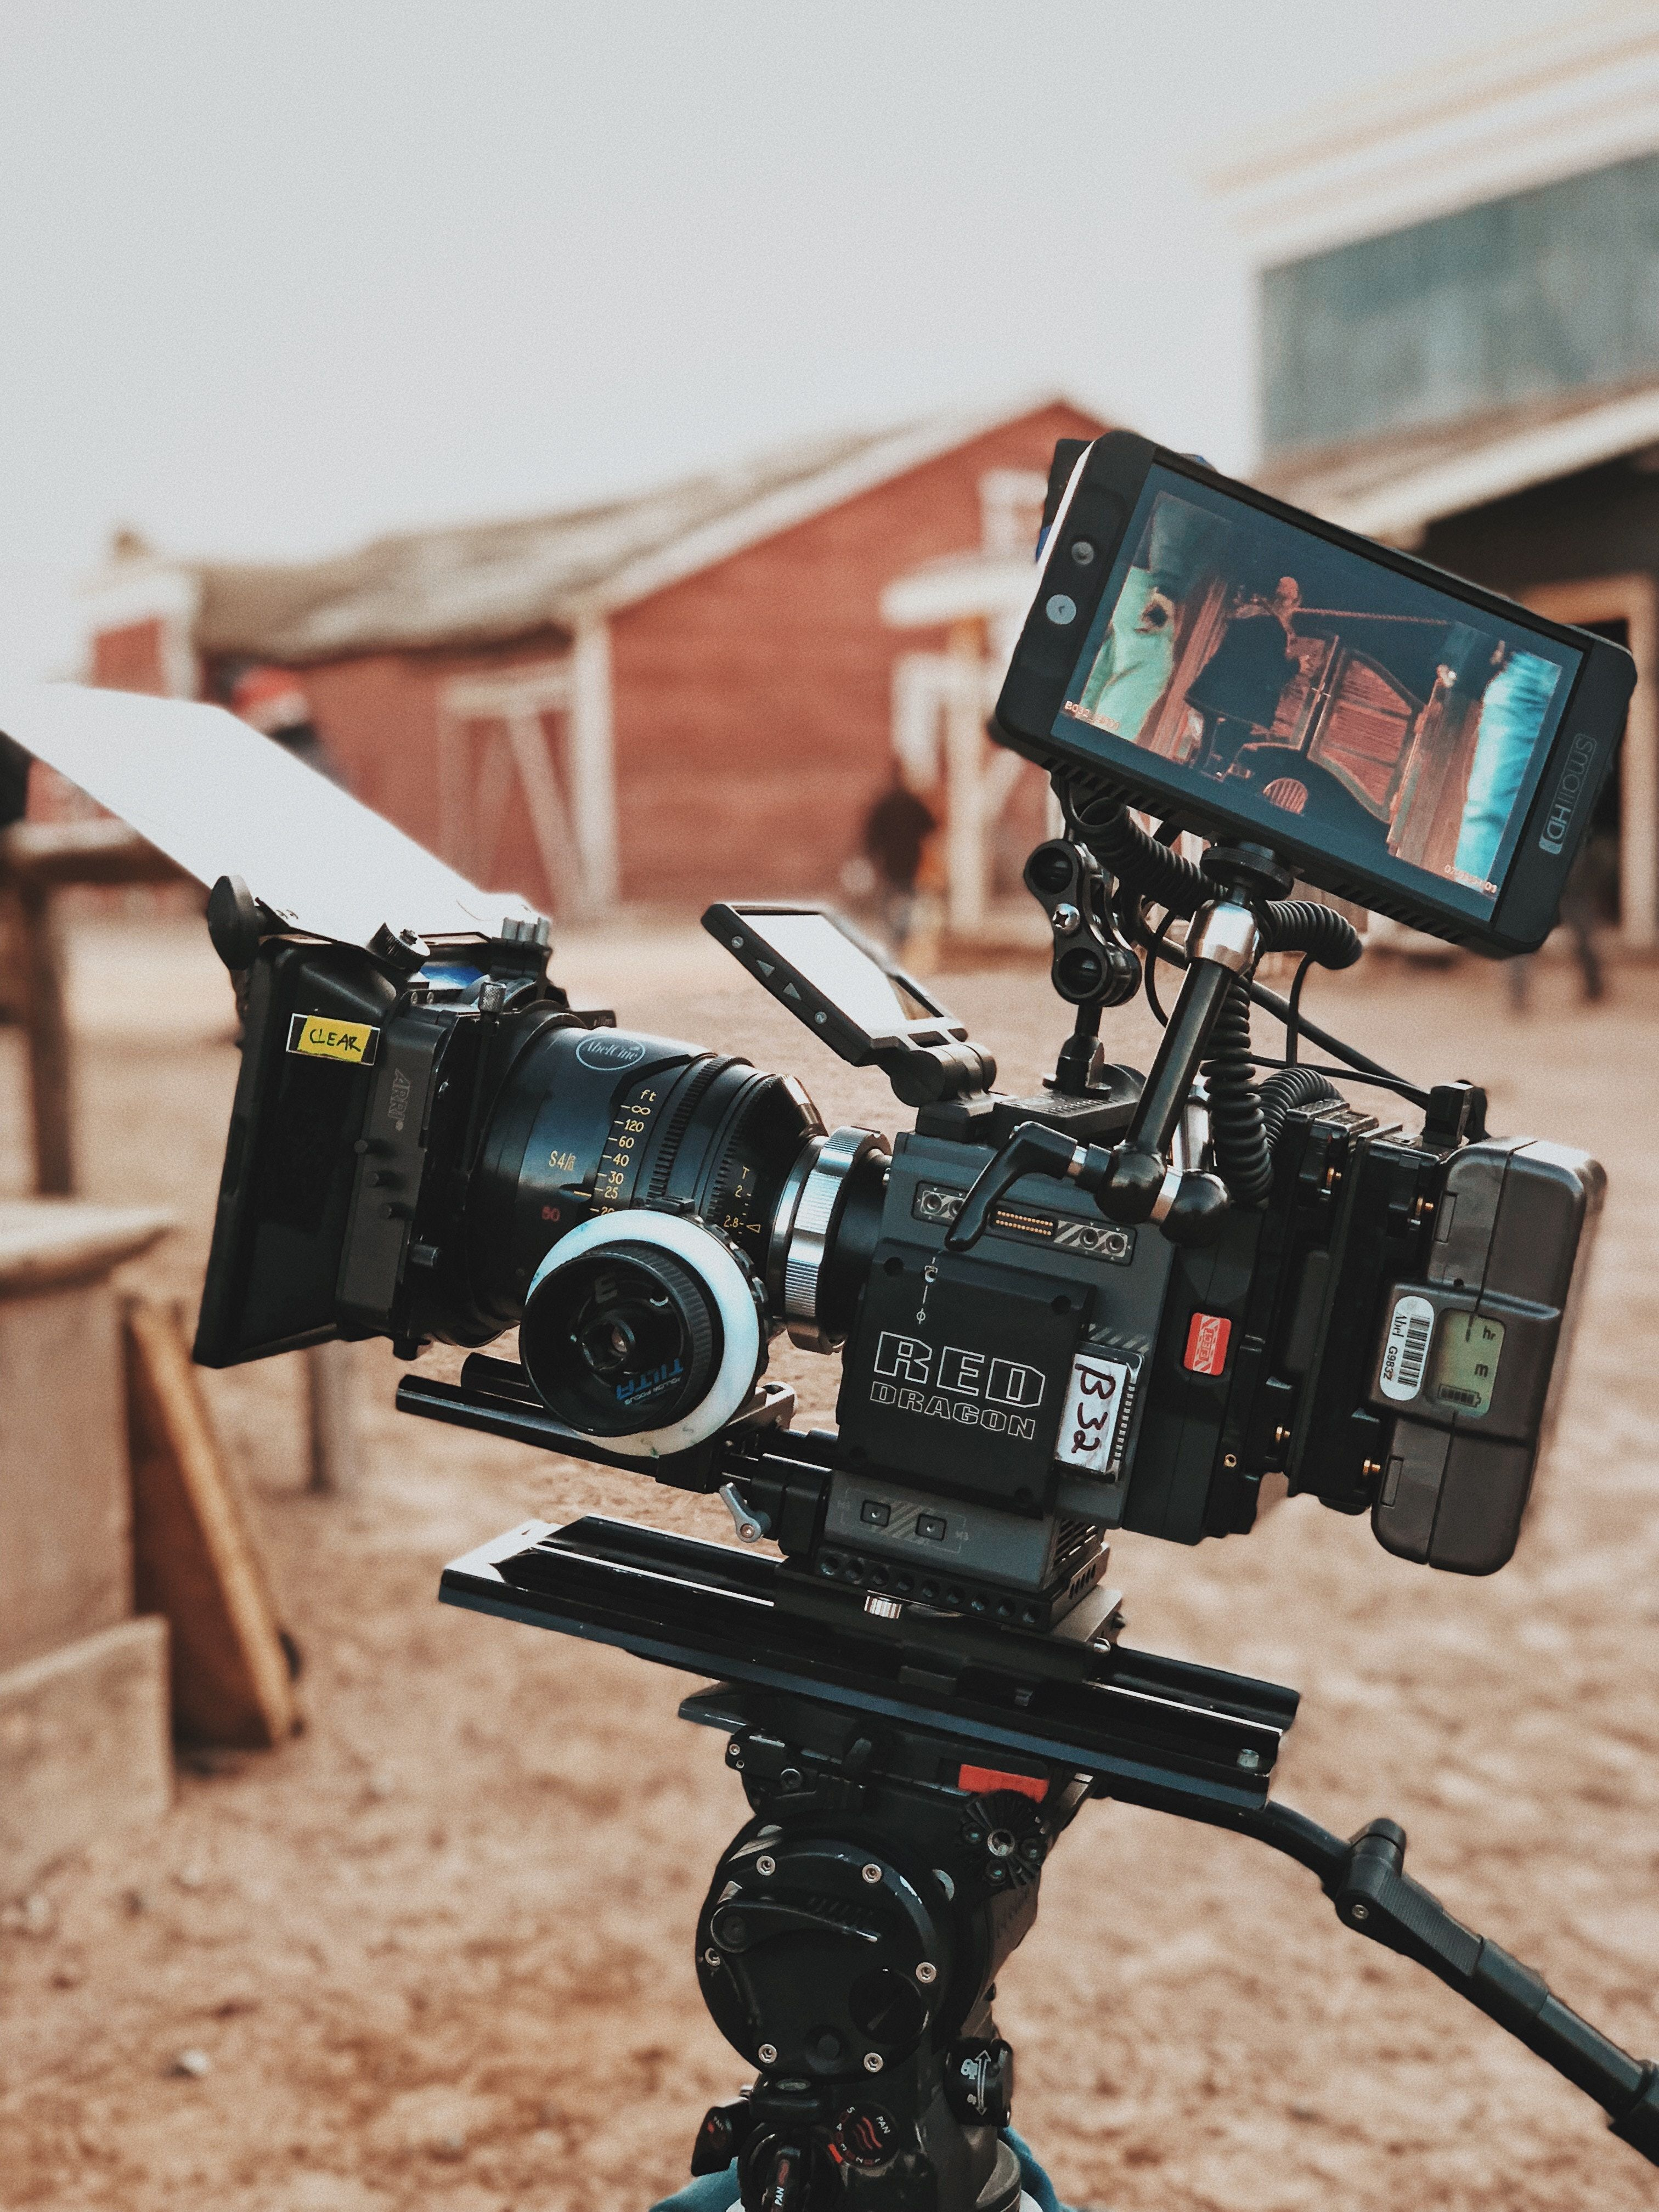 Santa Fe United States Camera Filming A Brown Structure Apple Iphone X 0d0e0e With Images Videography Film Stock Images Free